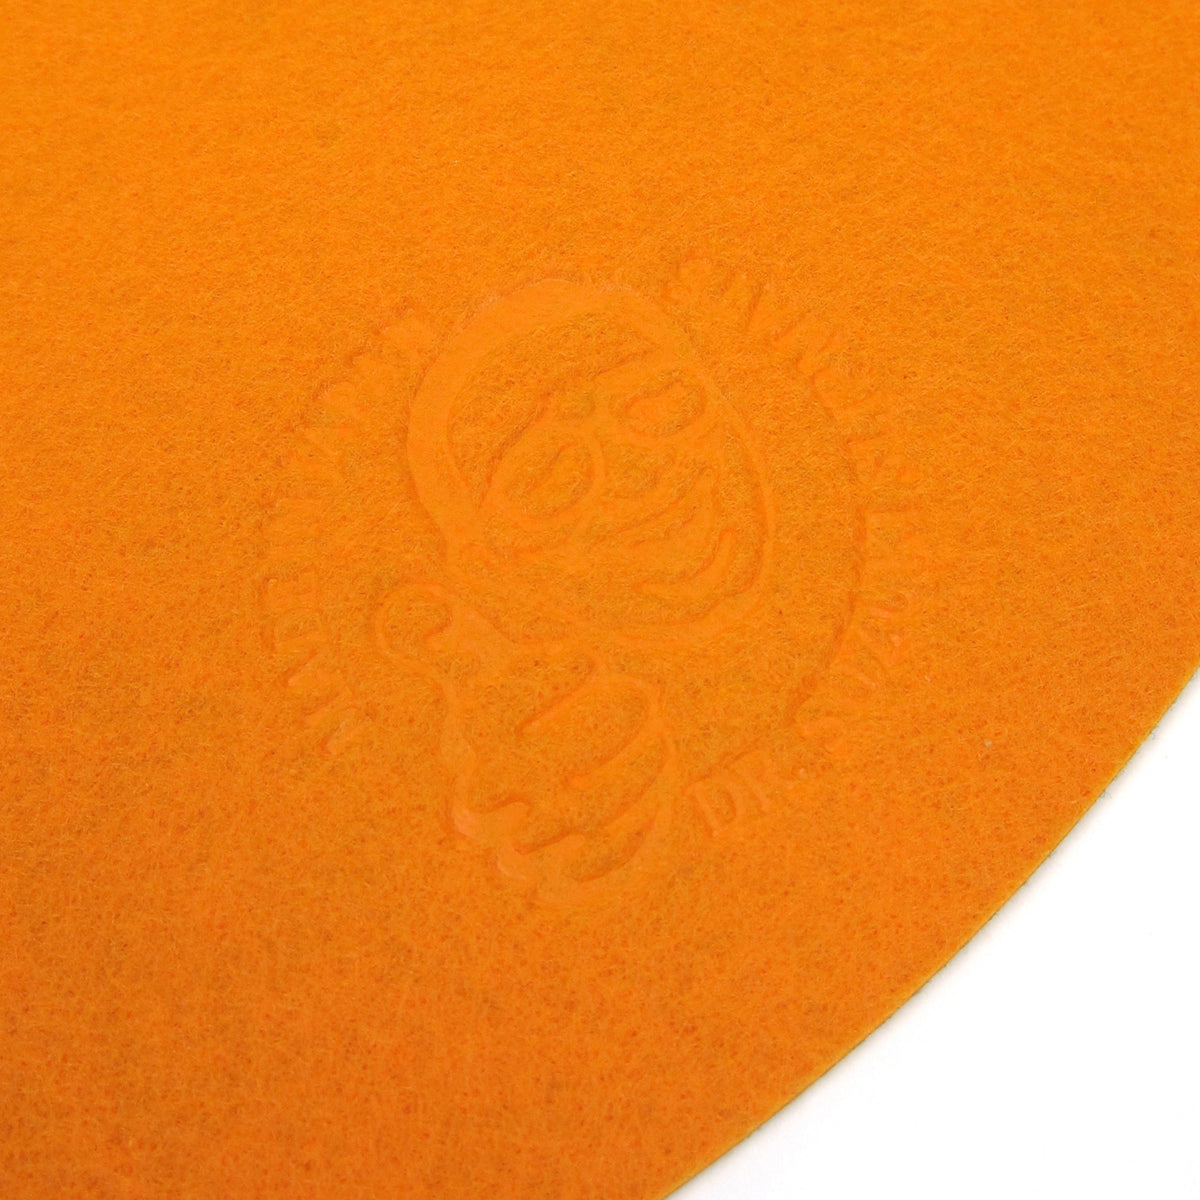 Stokyo: Dr. Suzuki Mix Edition Slipmats - Orange